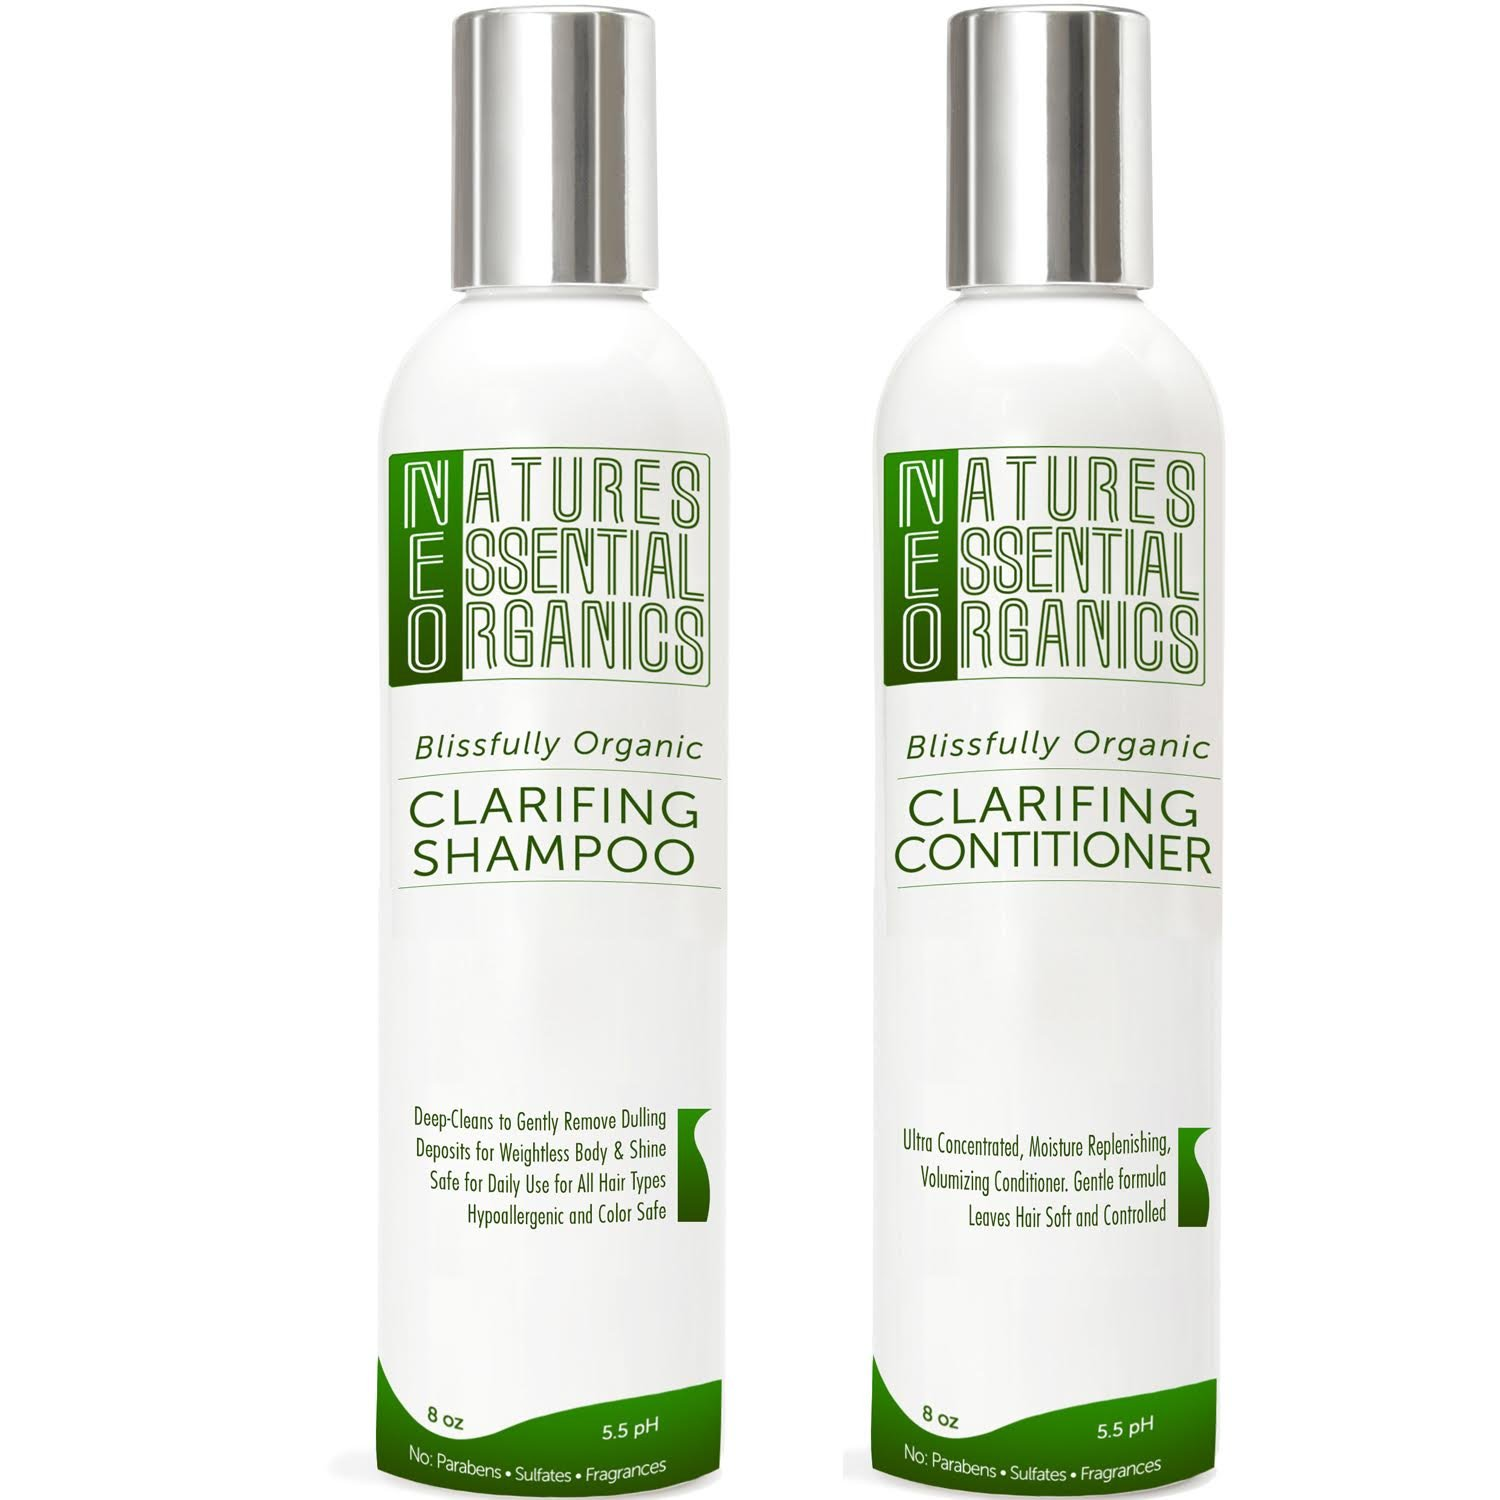 Clarifying Shampoo & Conditioner Set Organic Hair Product Moisturize and Volumize Your Hair with this Gentle, Sulfate Free, Color Safe Concentrated Treatment, 8oz (Pack of 2)